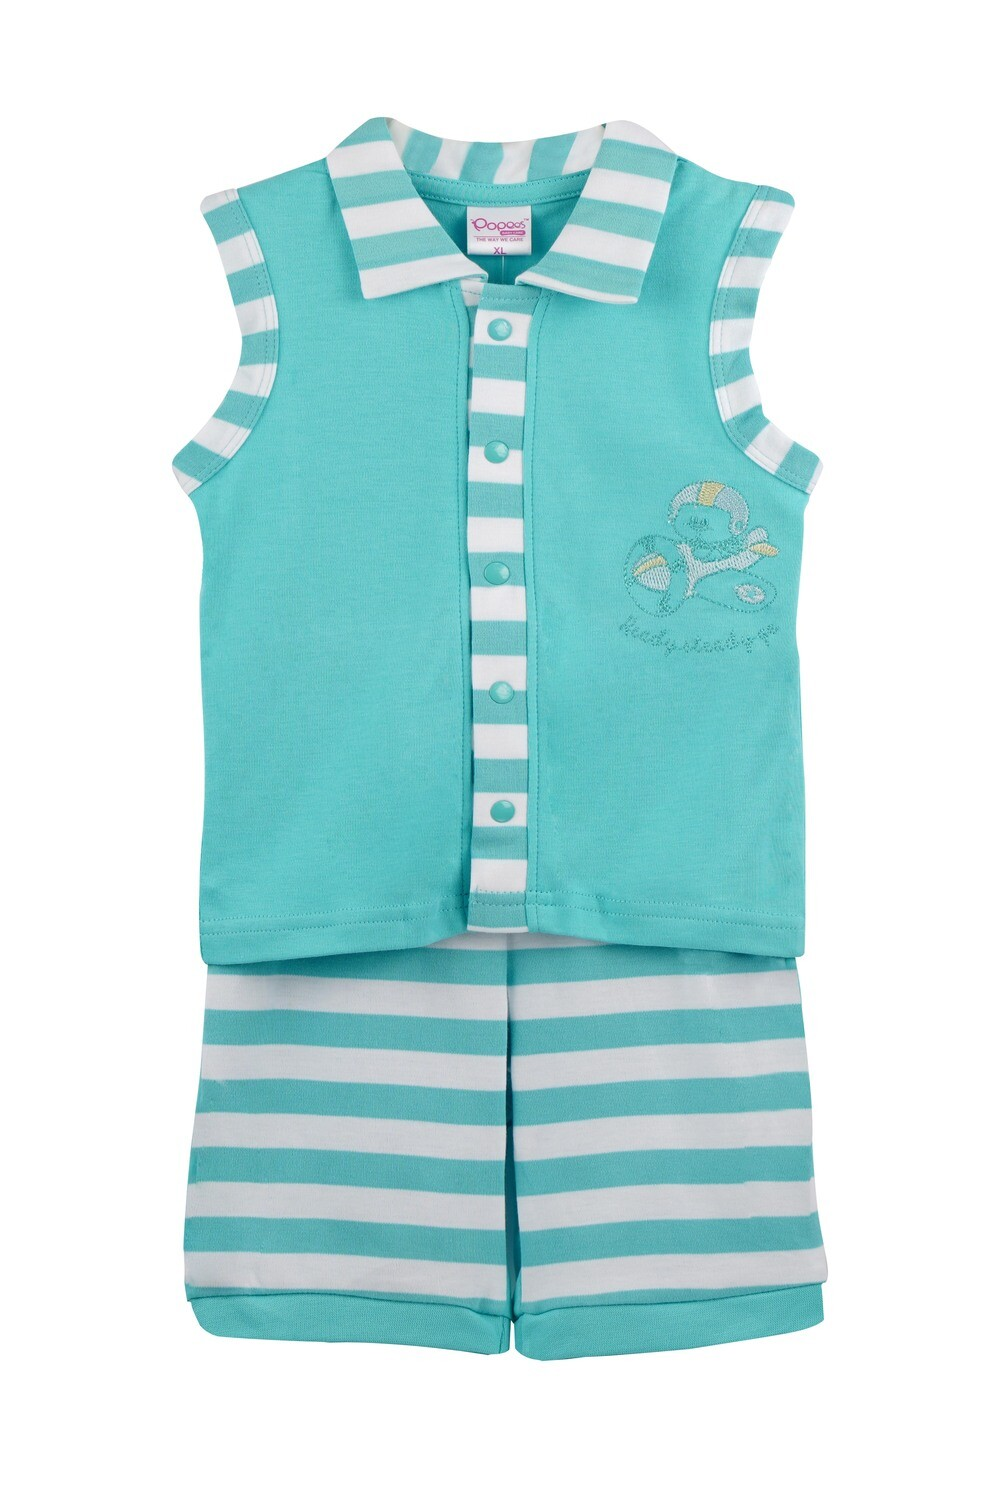 Popees Chitwan for Baby Boys (XL: 18-24 Months)